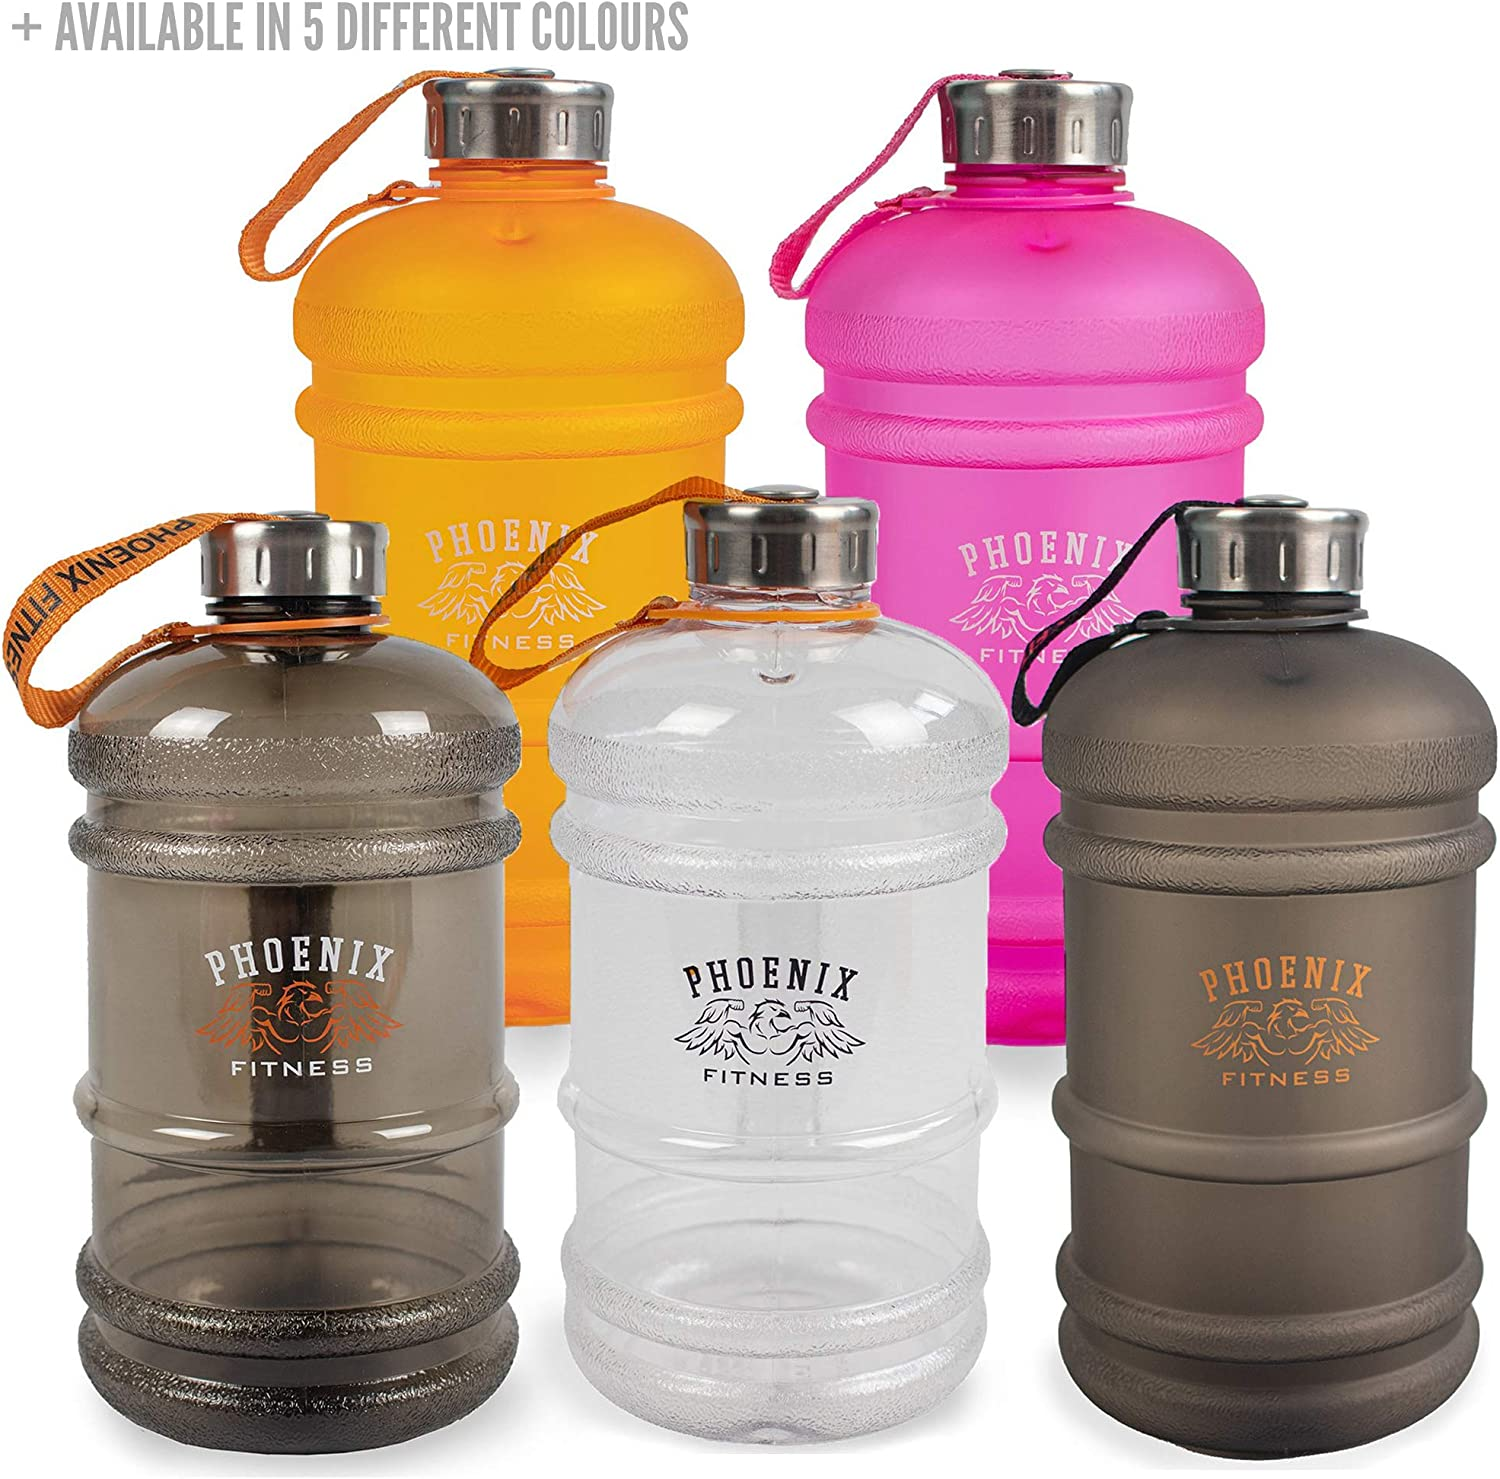 Unisex Hydration Bottle 2 Litre Bottle Screw Top Cap and Extremely Durable BPA-Free DEHP-Free Plastic Stainless Steel Cap Secured with a Strap Phoenix Fitness 2L Drinks Water Bottle